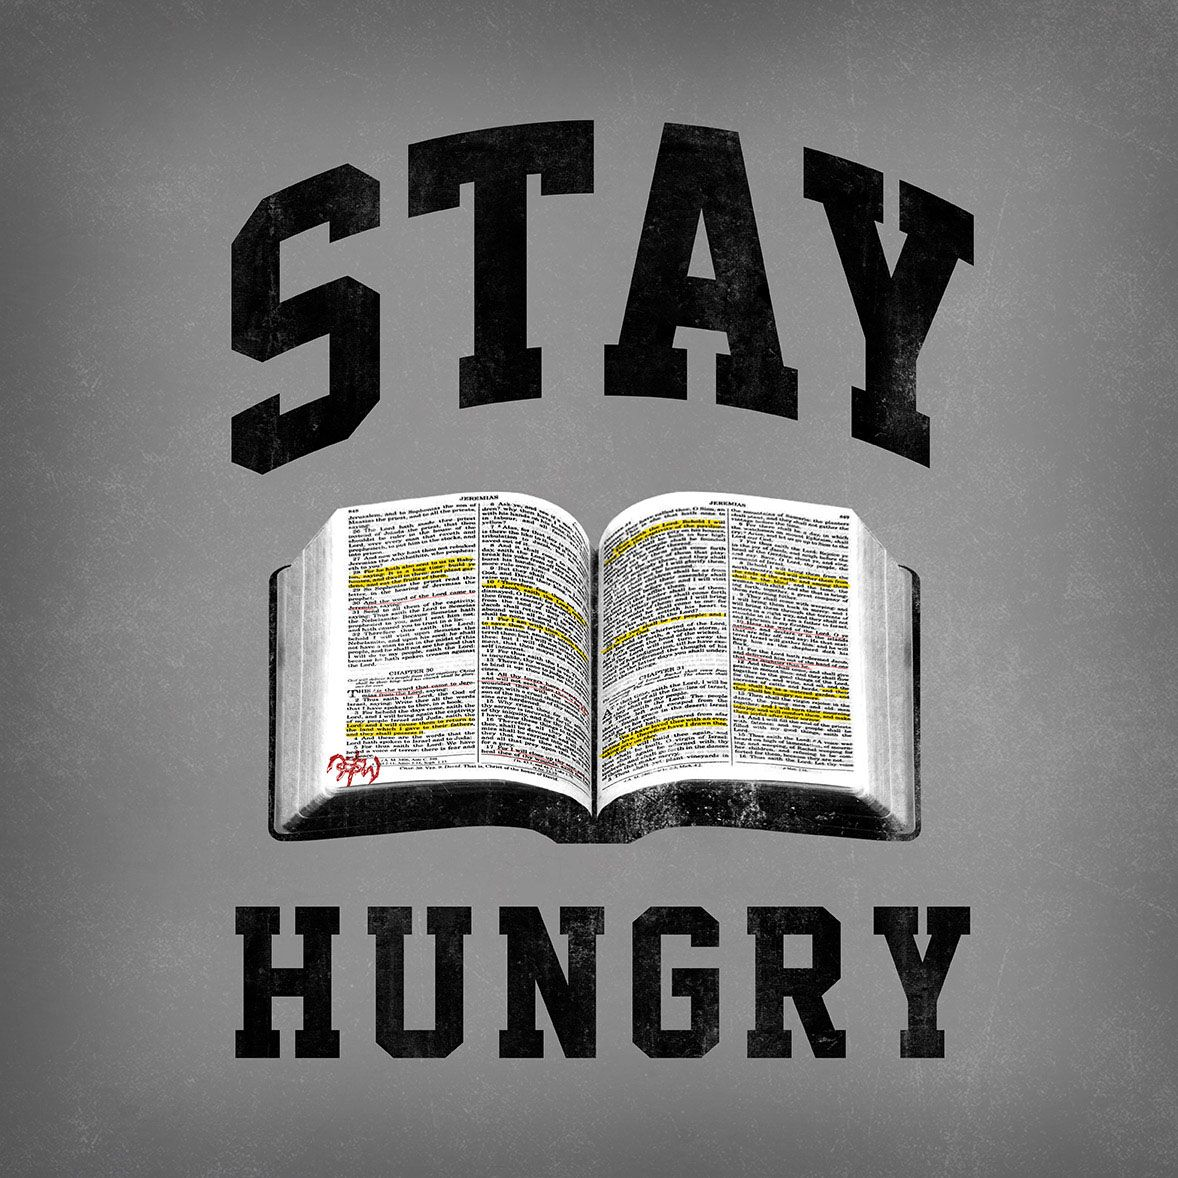 Stay hungry for the Word of God. #Breakfast #Lunch #Dinner ...